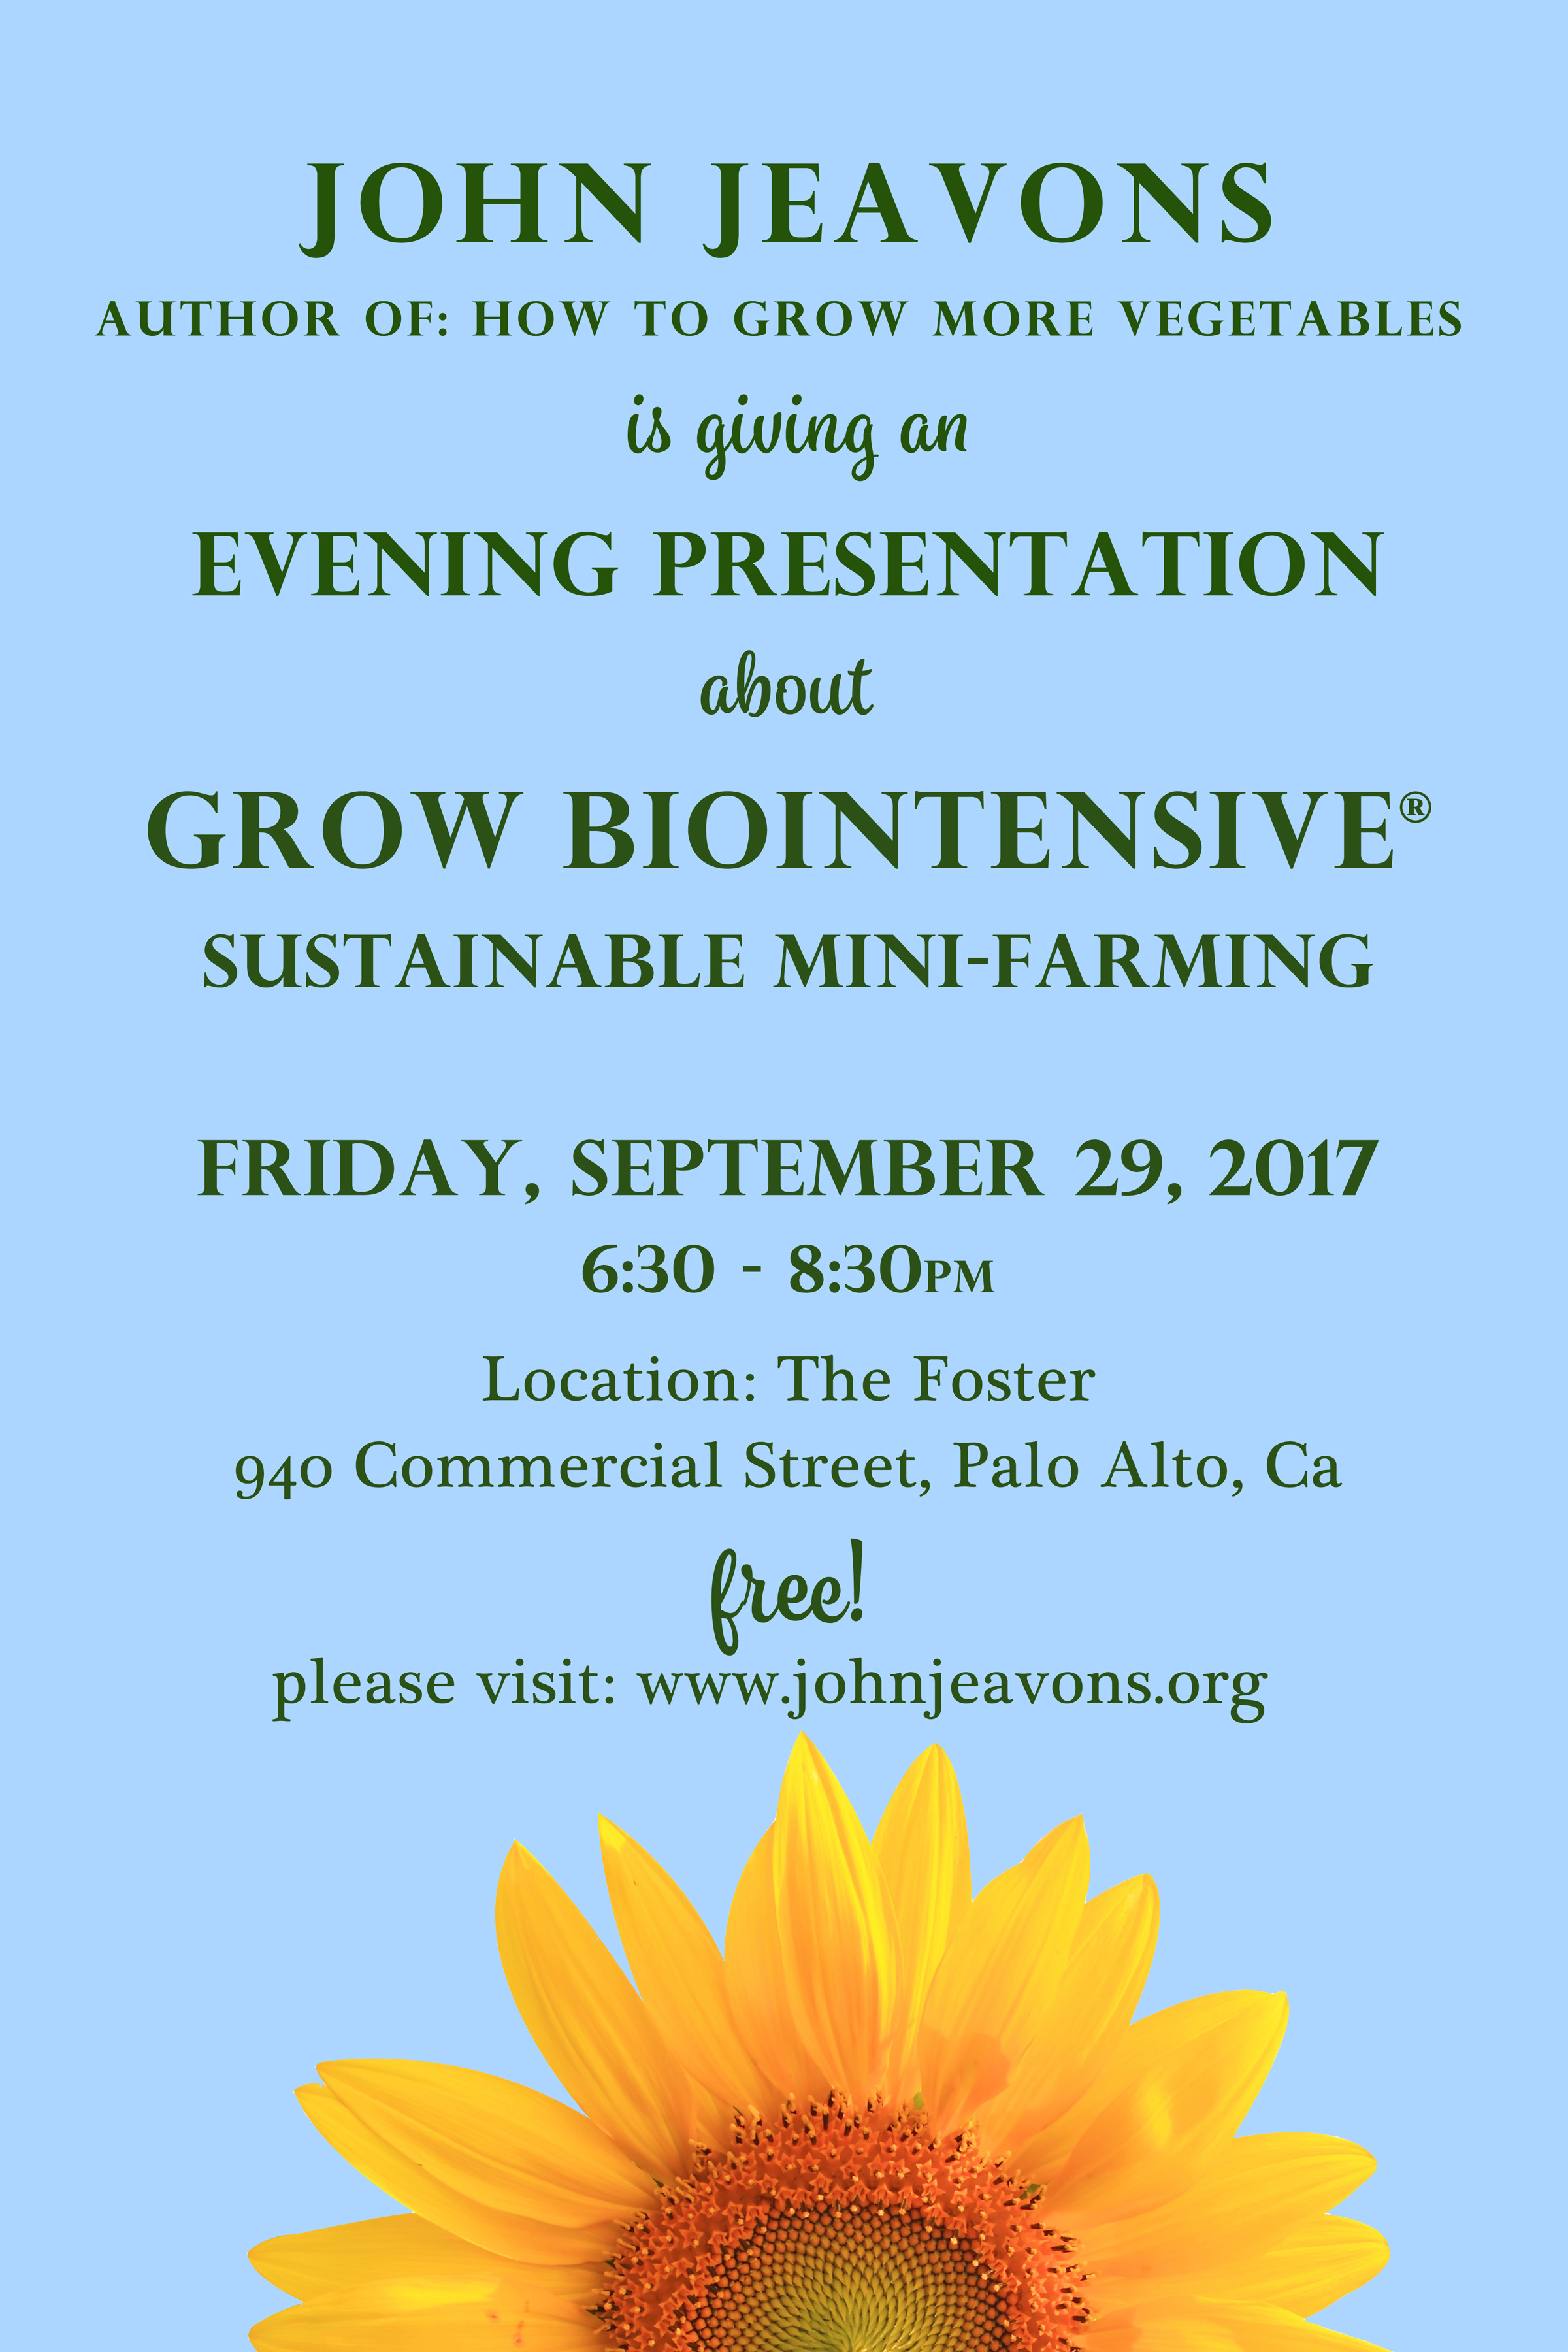 Event Poster: John Jeavons, Author of How to Grow More Vegetables, is giving an evening presentation about GROW BIOINTENSIVE Sustainable Mini-Farming Friday, Sept 30 6:30-8:30PM at the Foster 940 Commercial Street, Palo Alto. Free to the general public